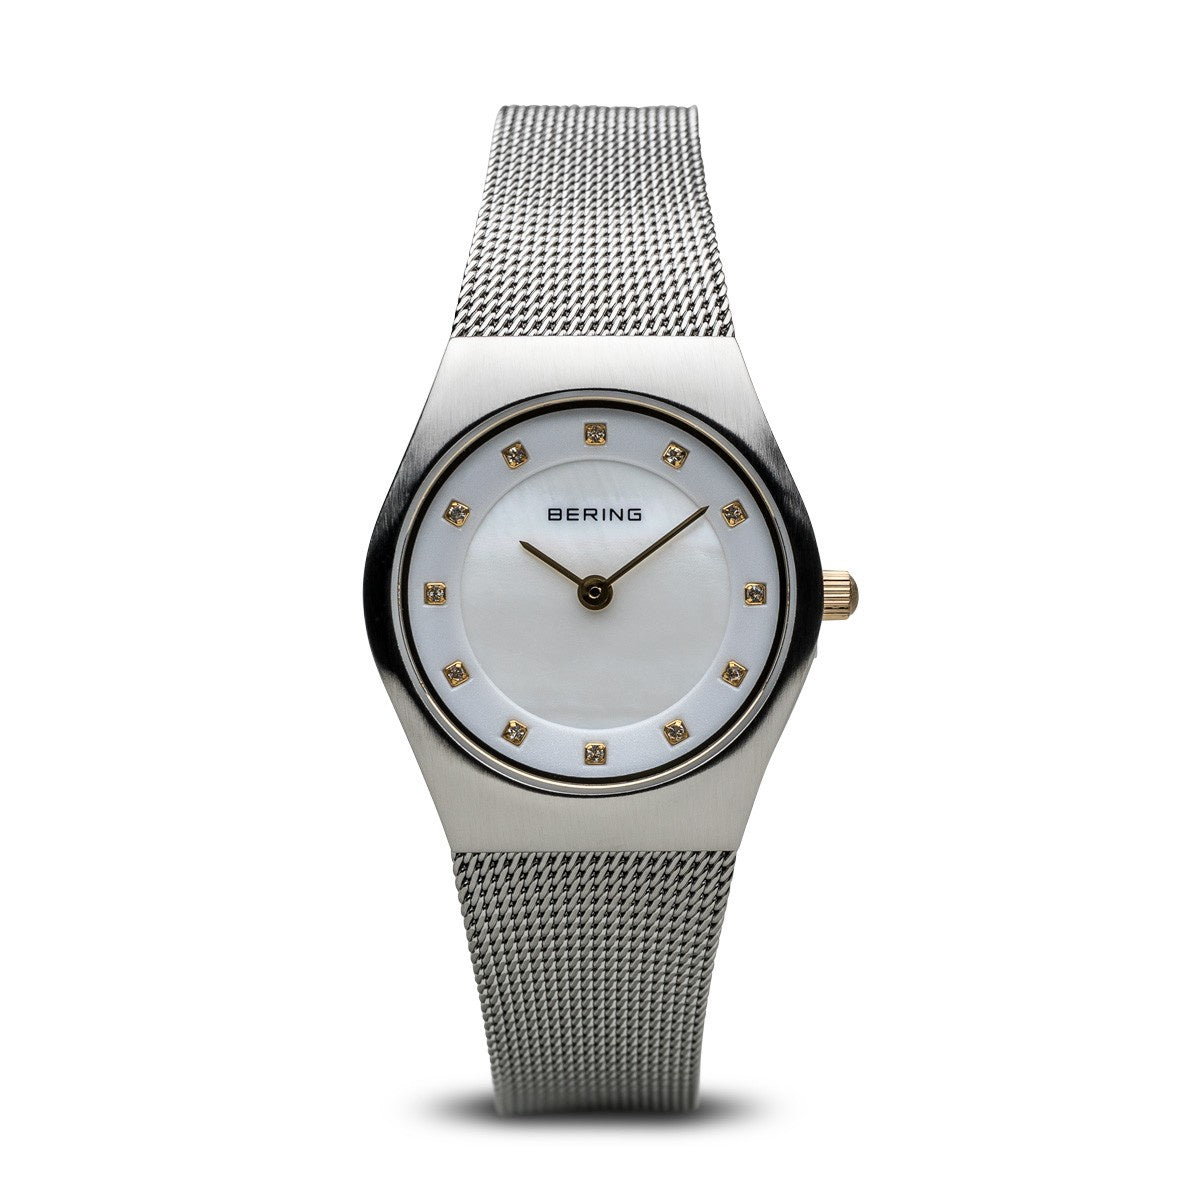 Bering Womens Brushed Silver Watch 11927-004 - Robert Openshaw Fine Jewellery